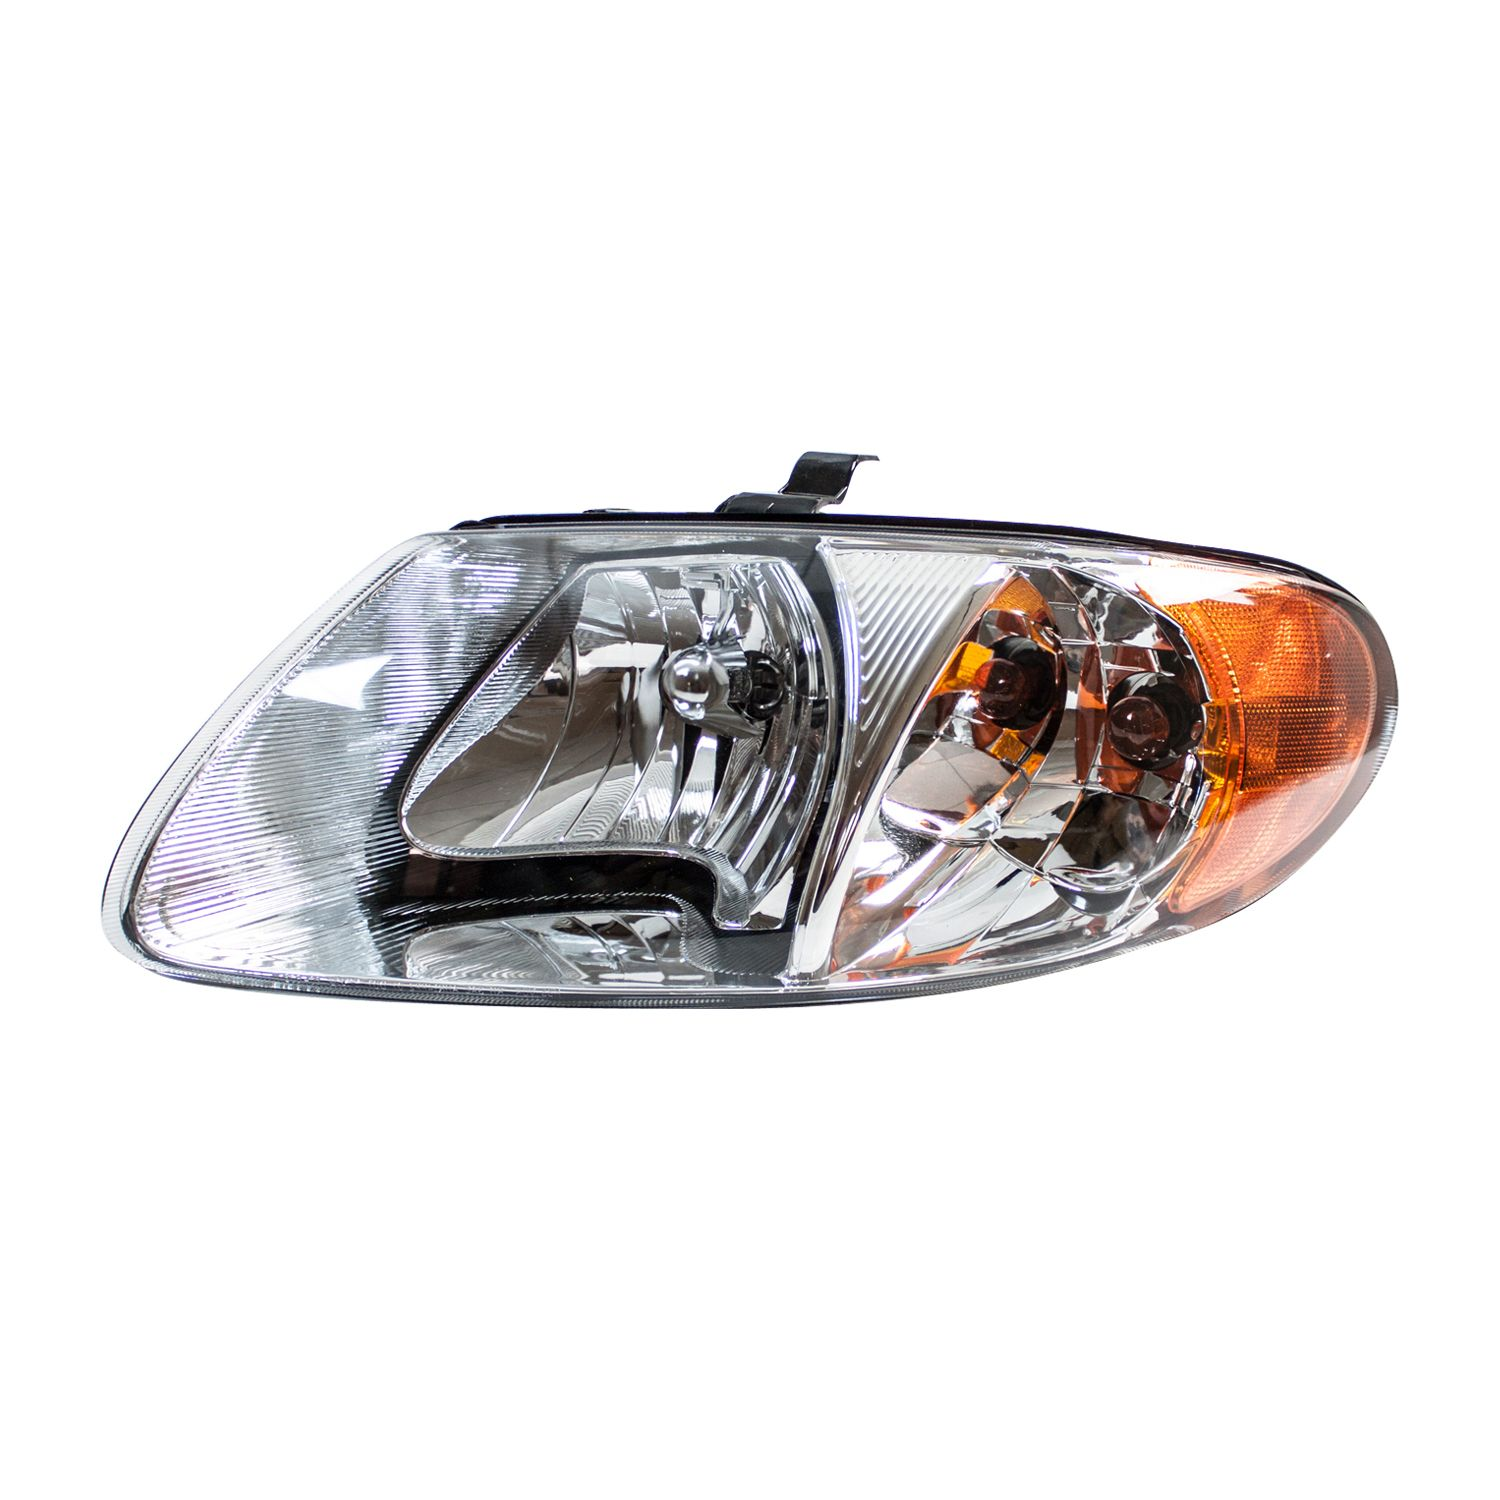 OE Replacement Tail Light Assembly CHEVROLET COLORADO 2007-2008 Multiple Manufacturers GM2801164N Partslink GM2801164